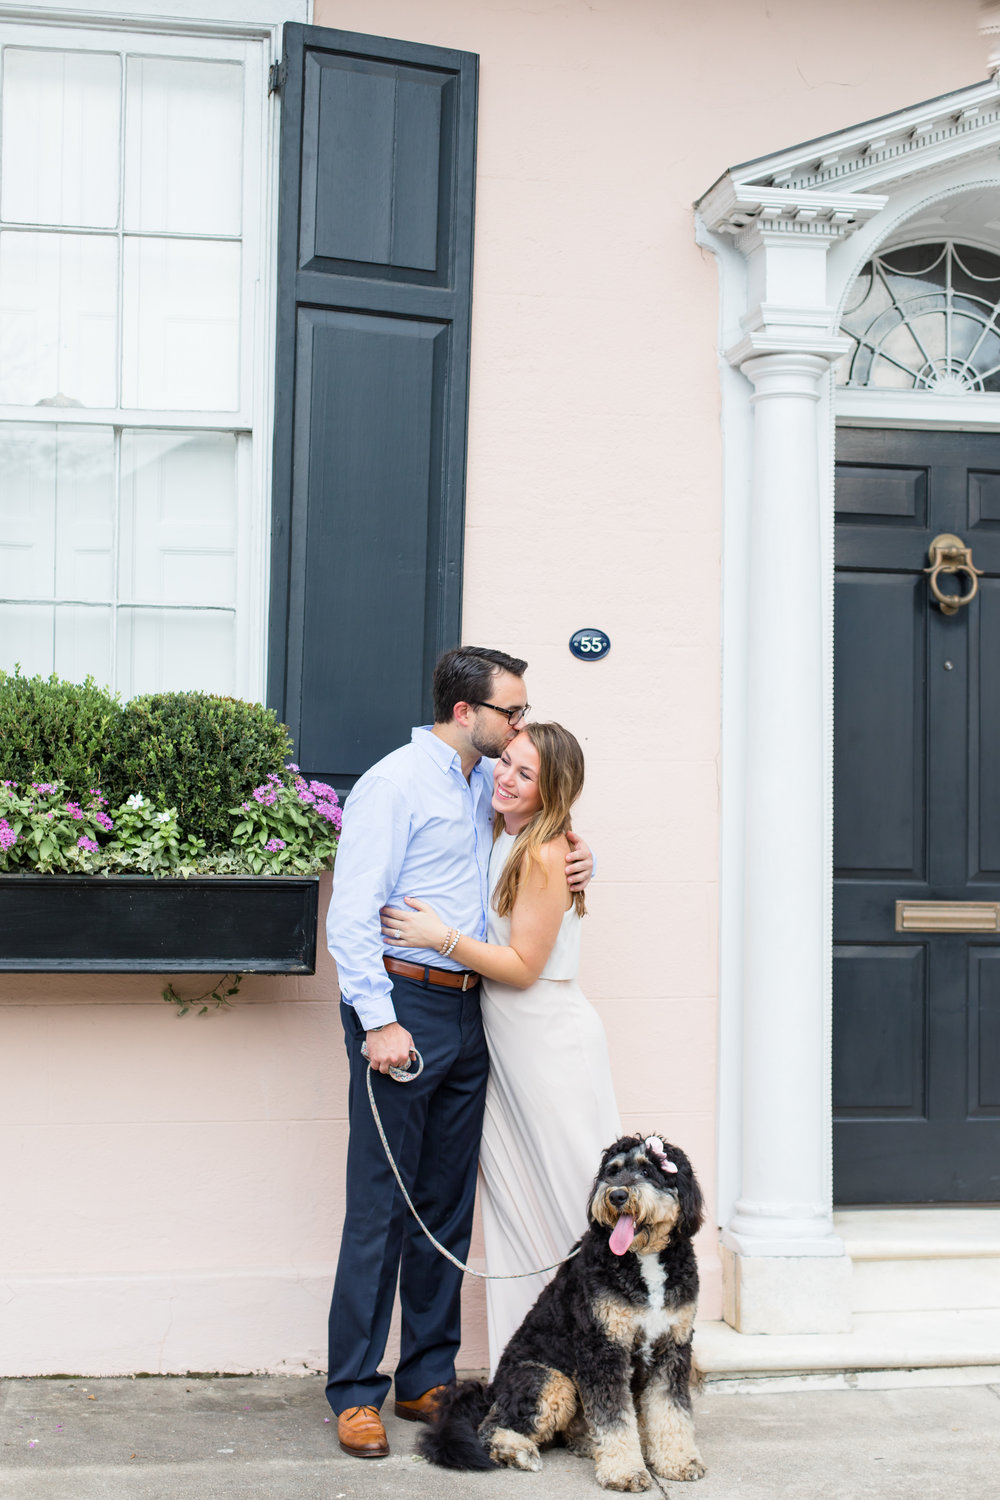 kailee-dimeglio-charleston-downtown-engagement-doodle-puppy